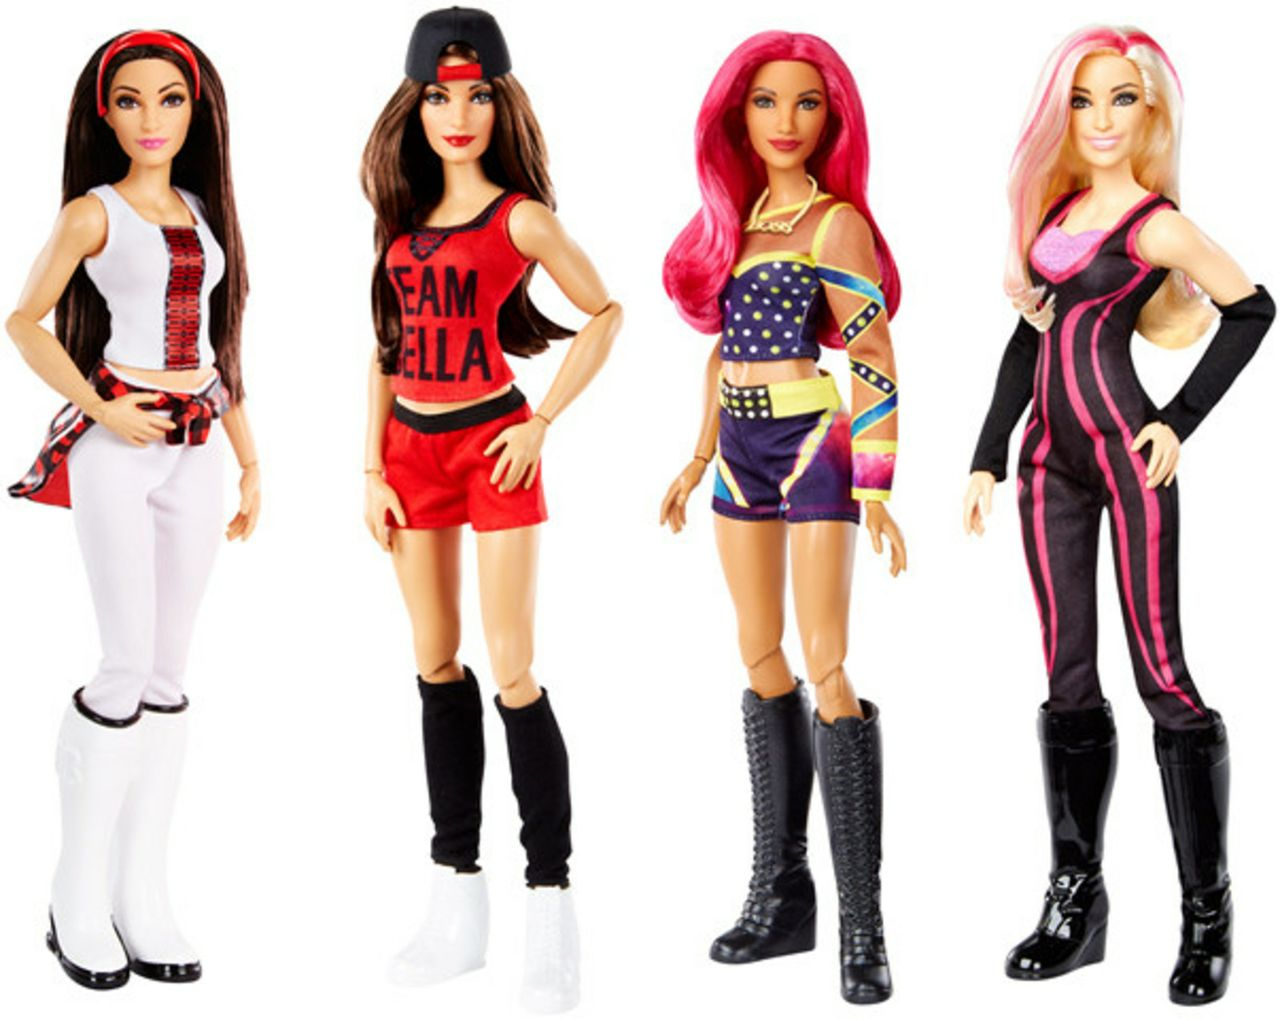 Mattel And WWE® Launch Girls Product Line